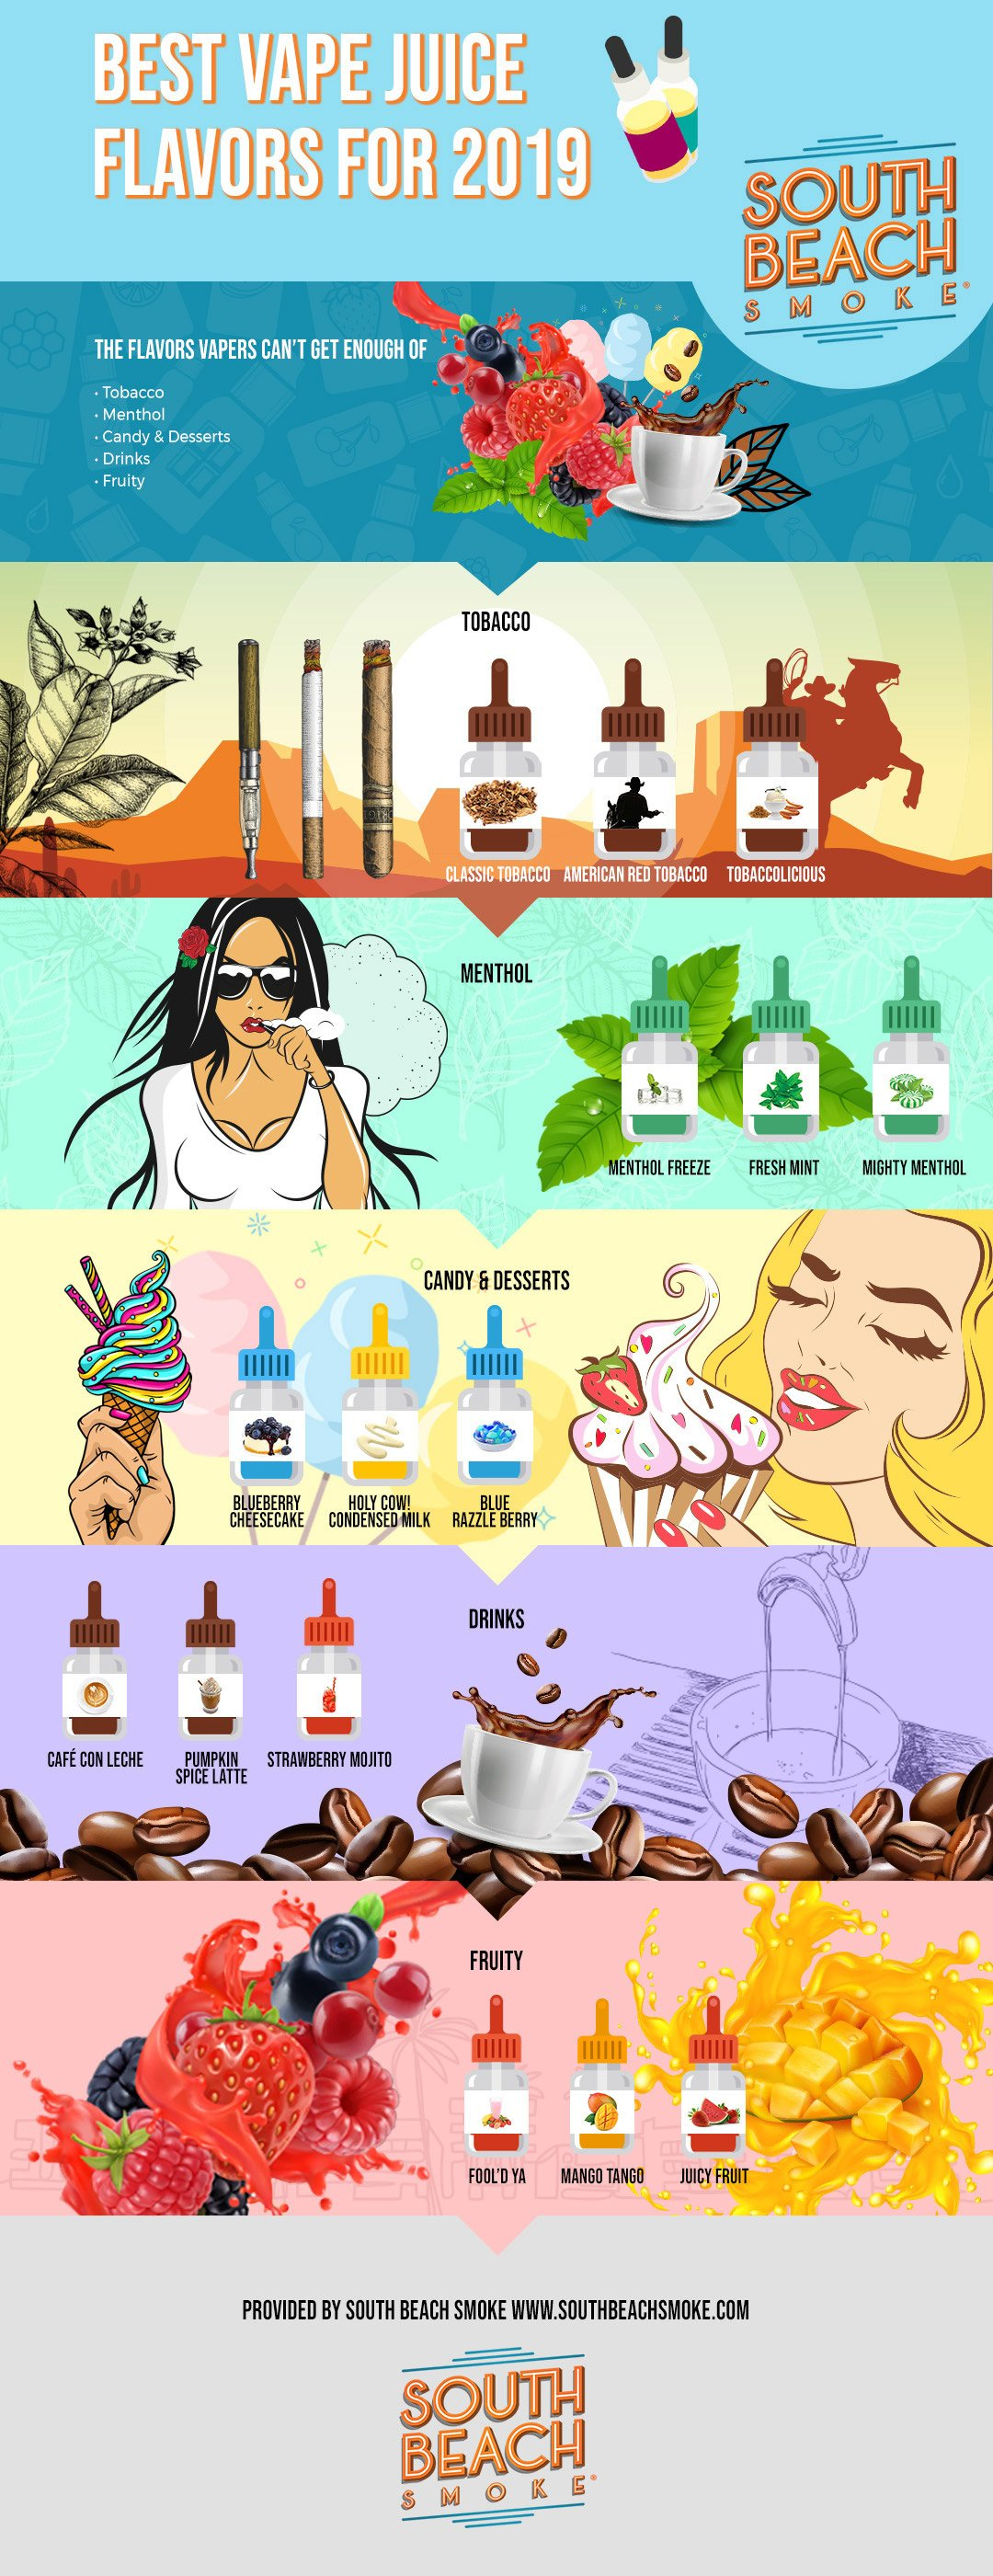 2019's Best E Juice Flavors Infographic